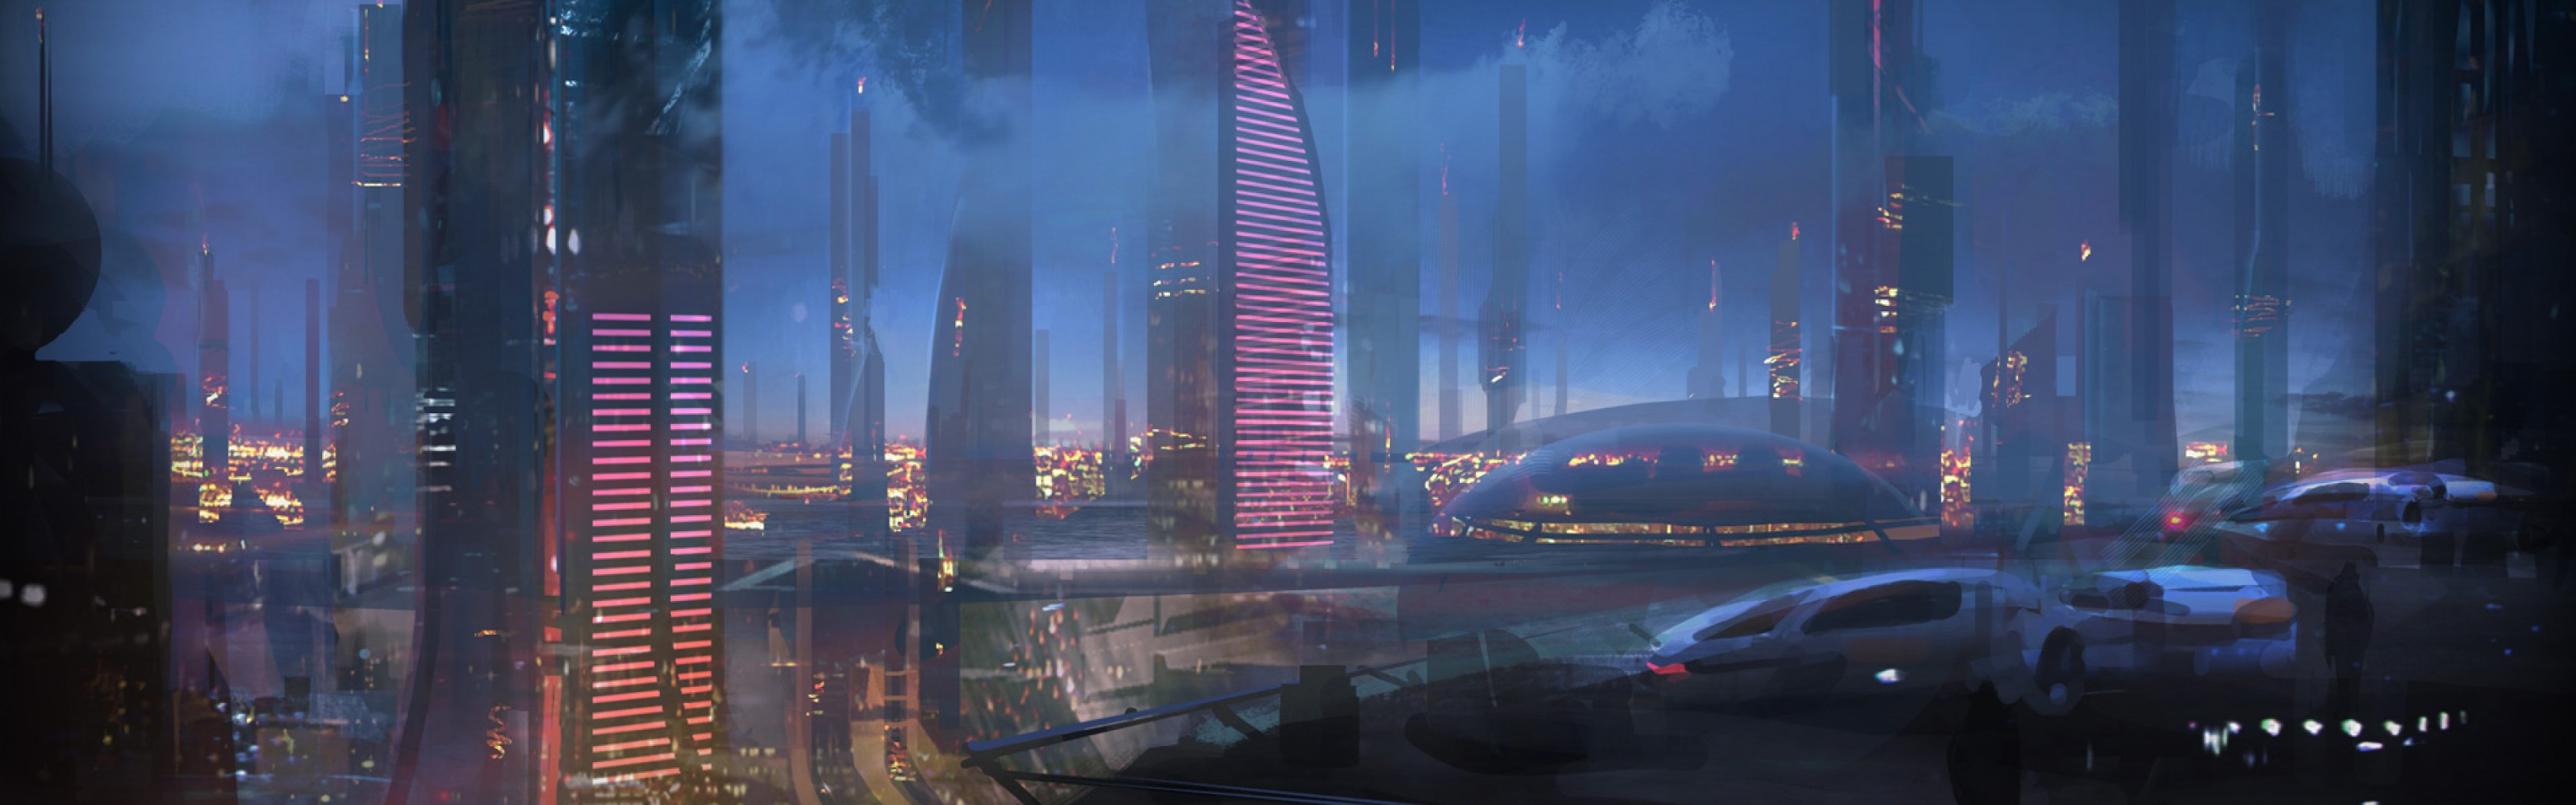 3360x1050 - Sci Fi Building Wallpapers 19